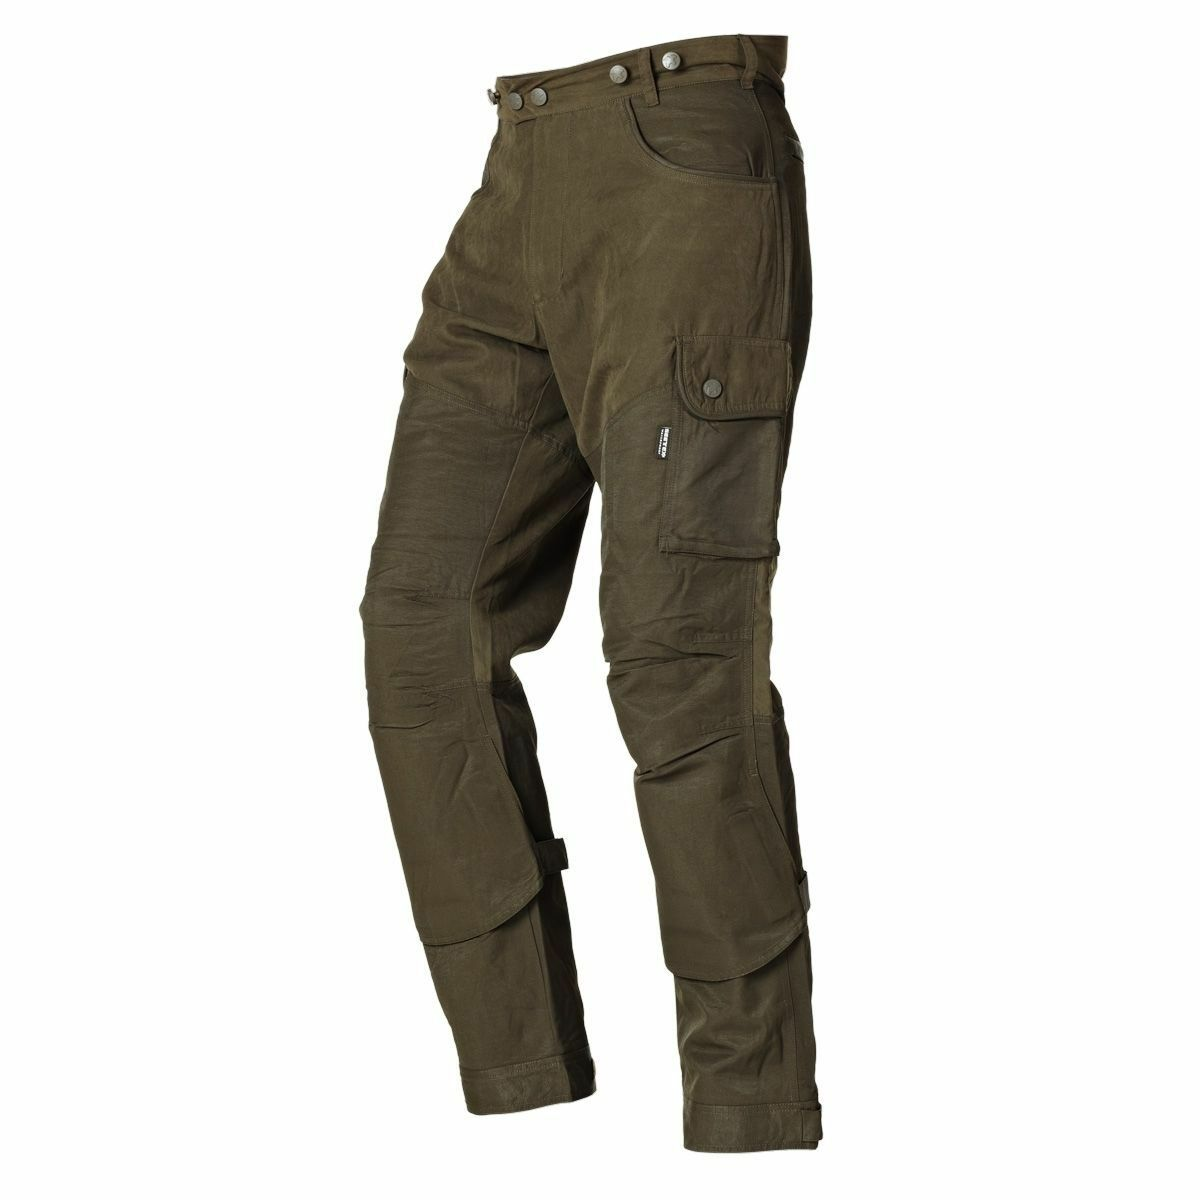 Seeland Keeper Waterproof Trousers - Olive Green - Sizes 48 to 60.  (Hunting)